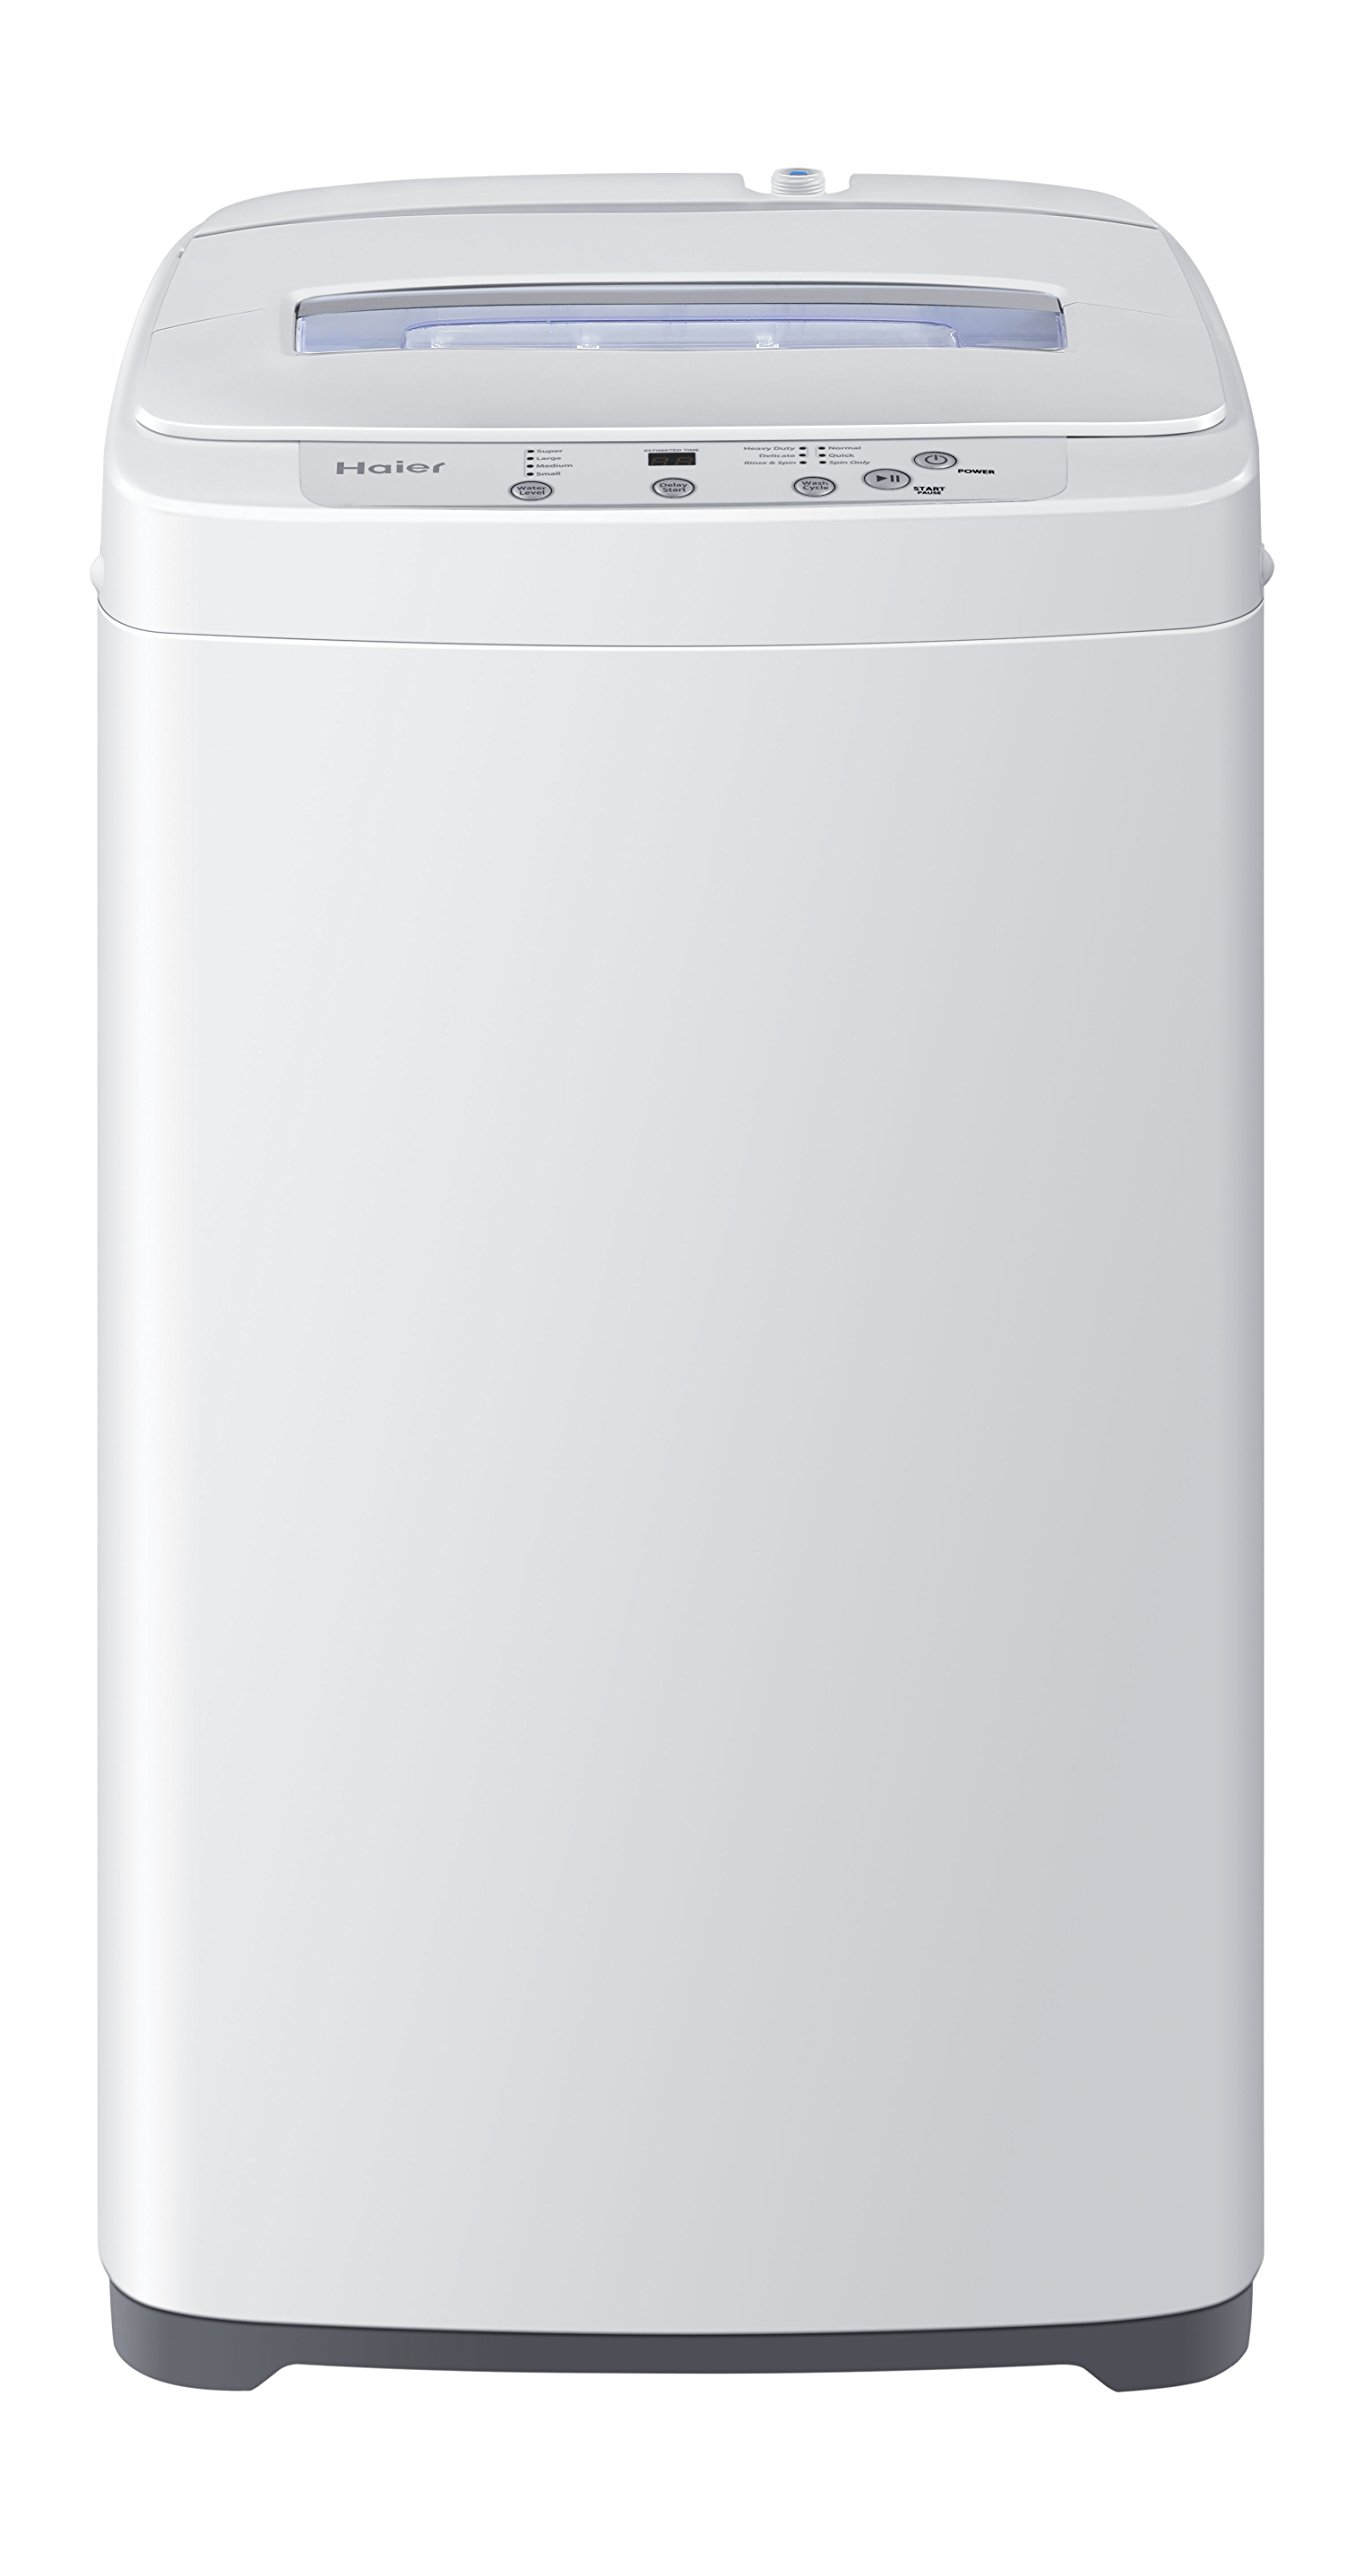 Haier HLP24E 1.5 cu. ft. Portable Washer with Stainless Steel Drum and Pulsator Wash System by Haier